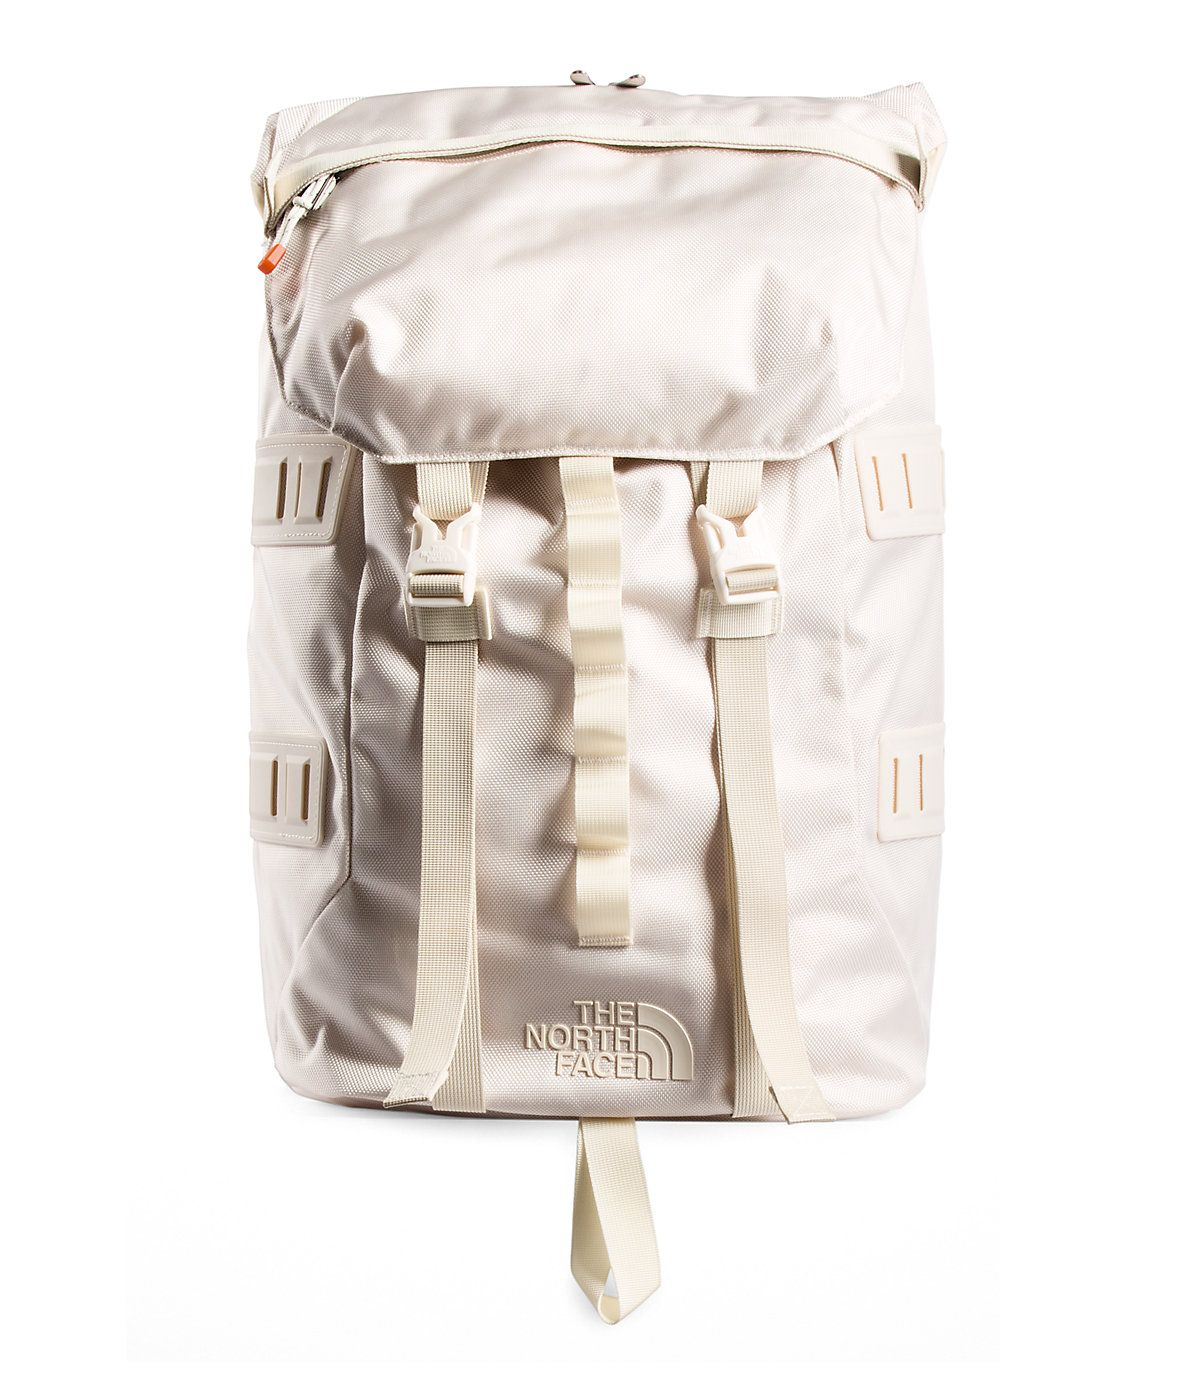 ca1939af7 The North Face Lineage Ruck 37L Backpack in 2019   Products ...